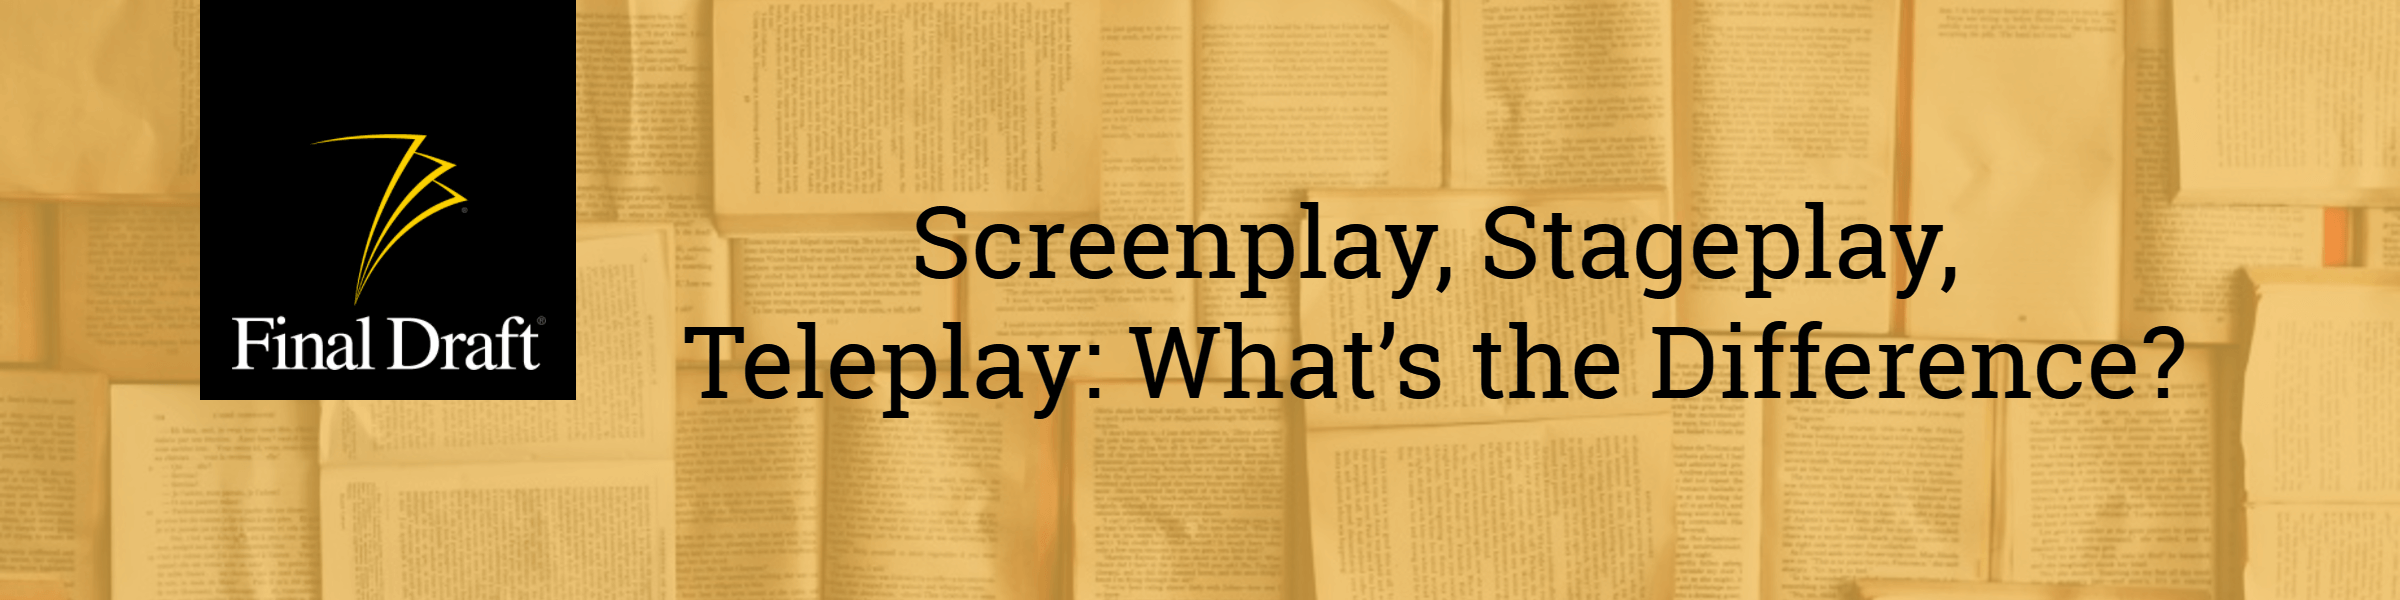 Difference Between Screenplay, Teleplay and Stage Play | Final Draft®